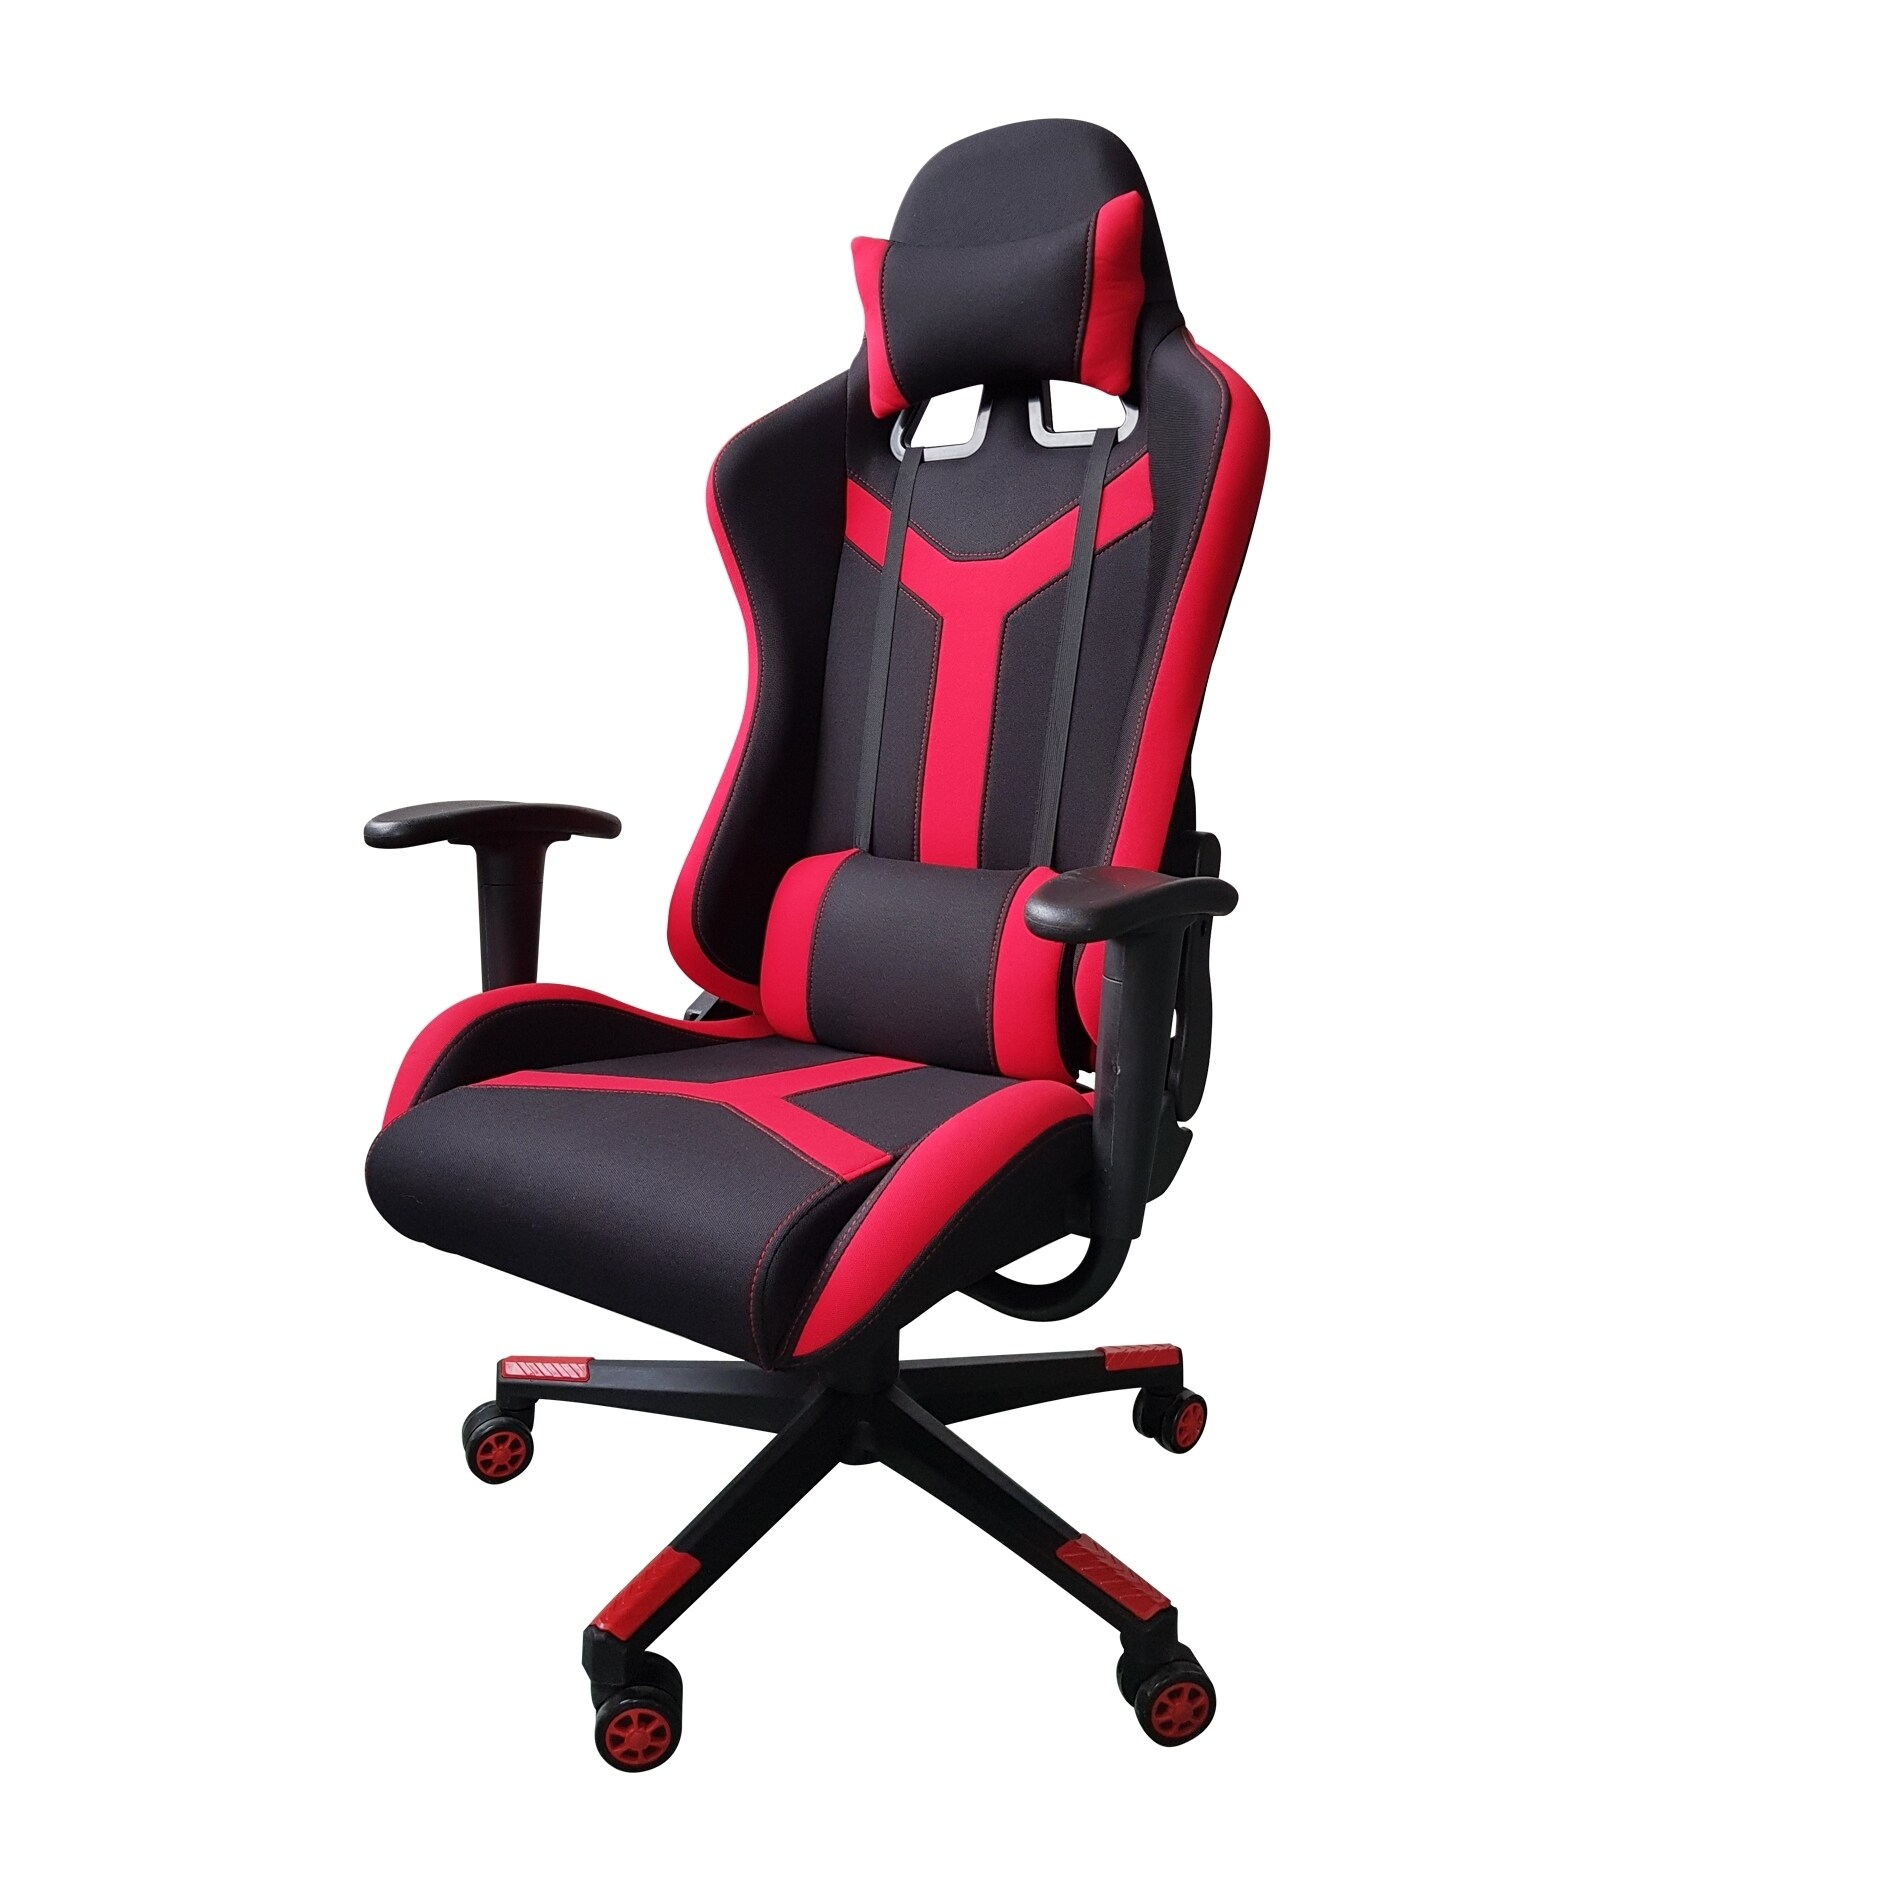 Video Gaming Chair Executive Swivel Racing Style High Back Office Lumbar Support Ergonomic With Headrest Red Free Shipping Today